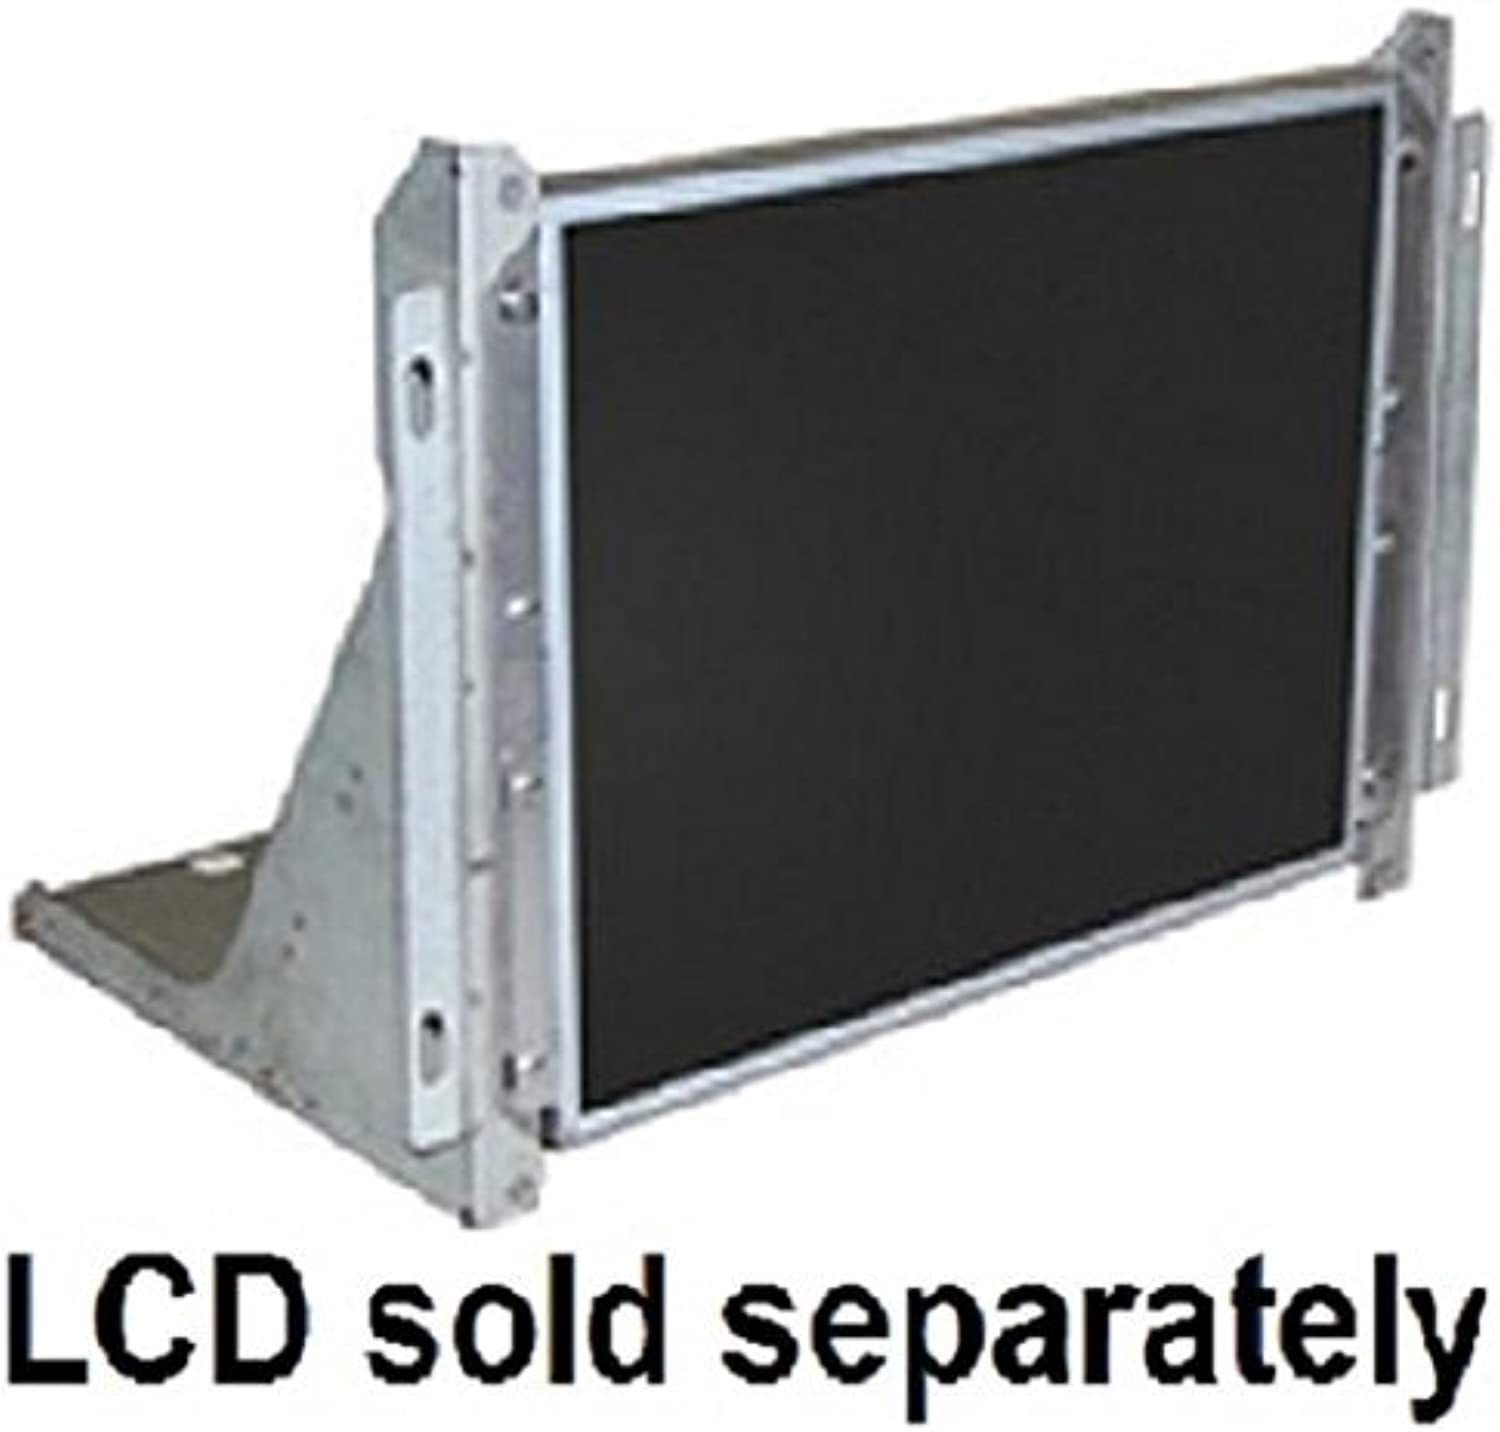 19 inch Arcade Game LCD Monitor Retro Frame Kit  Retrofit 19 inch CRT shelf mount monitors; LCD sold separately by RetroArcade.us